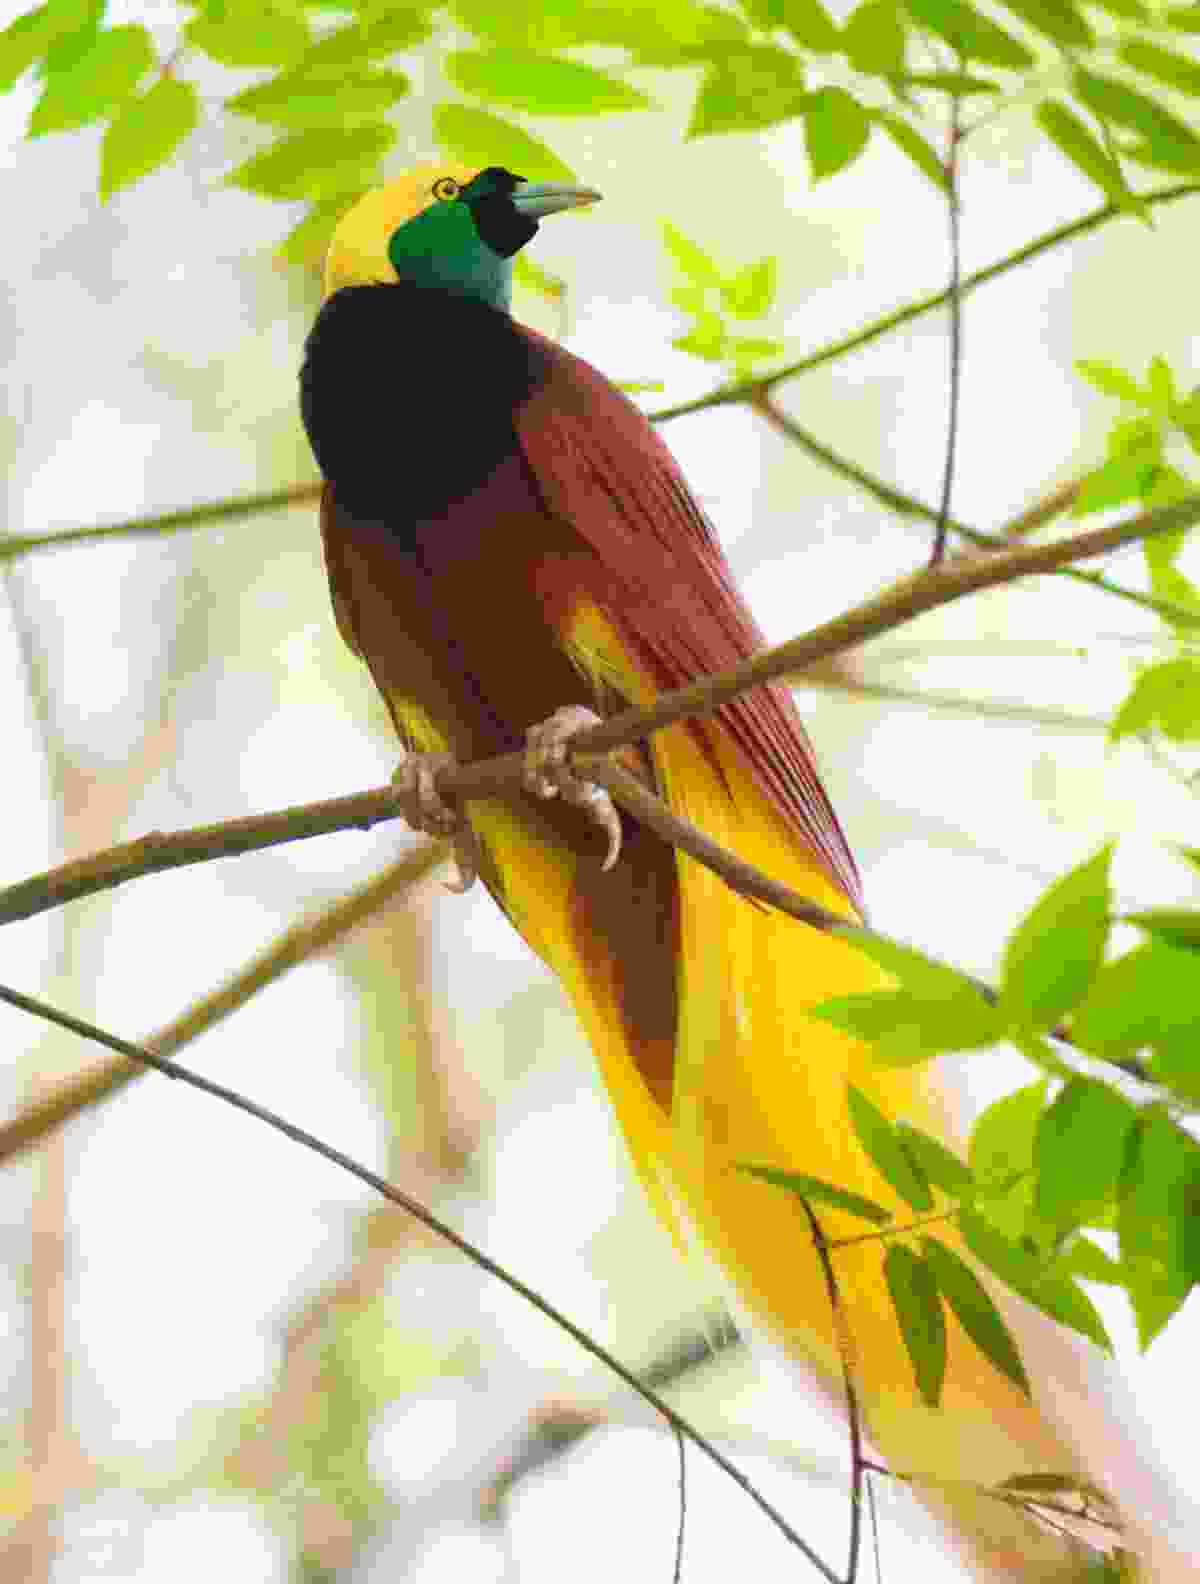 Birdlife of Papua New Guinea (Dreamstime)